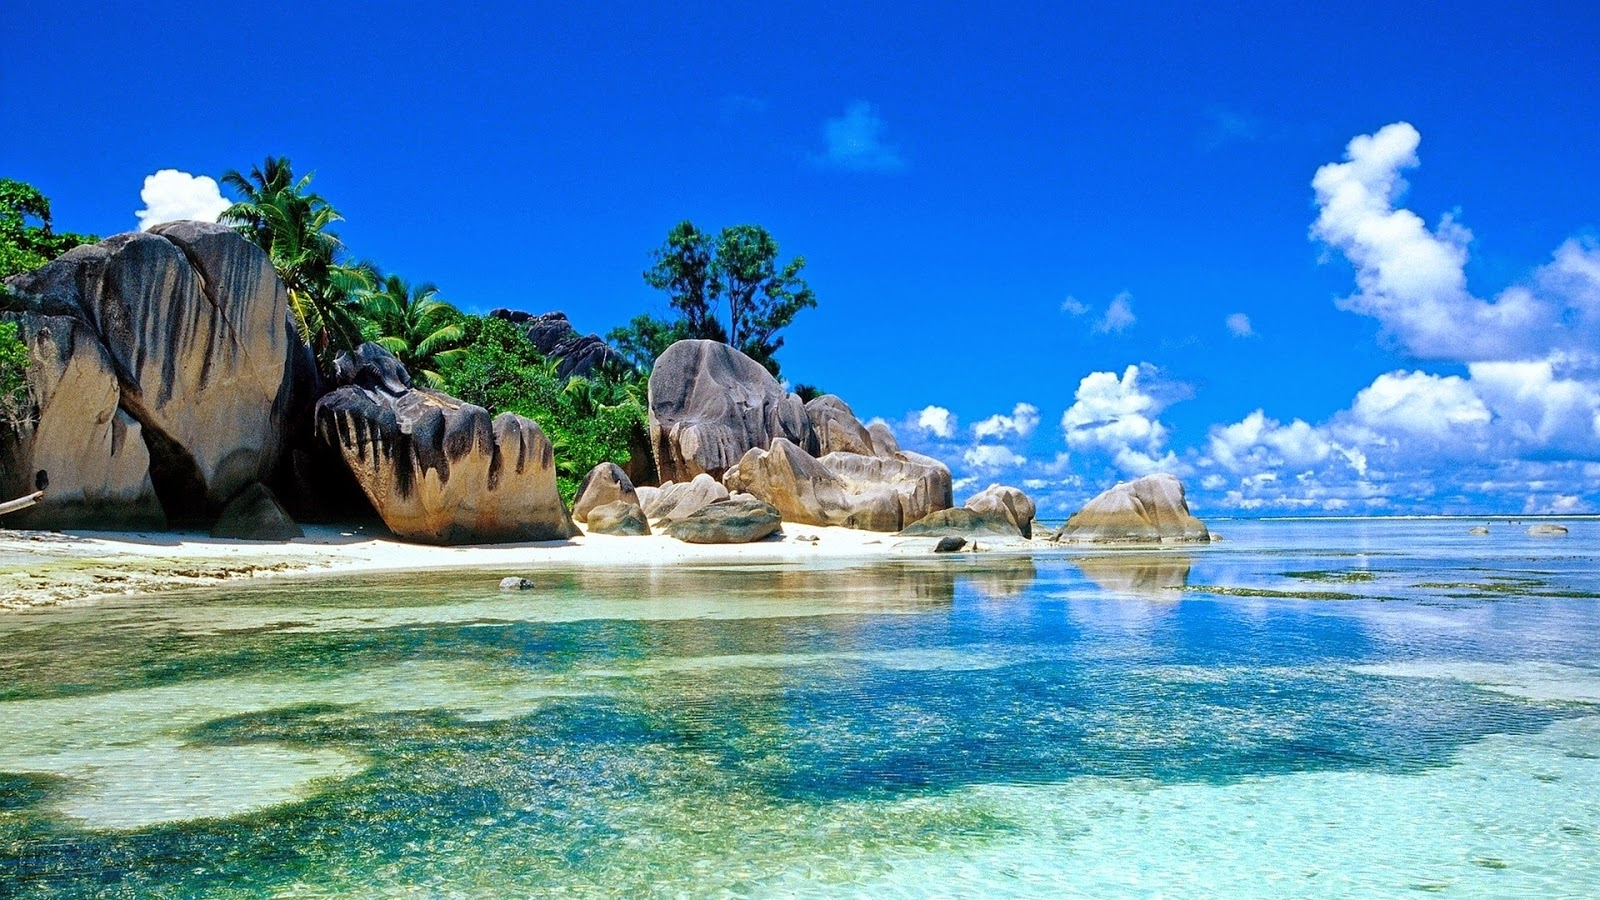 Top 10 Most Beautiful Must Visit Beaches In The World